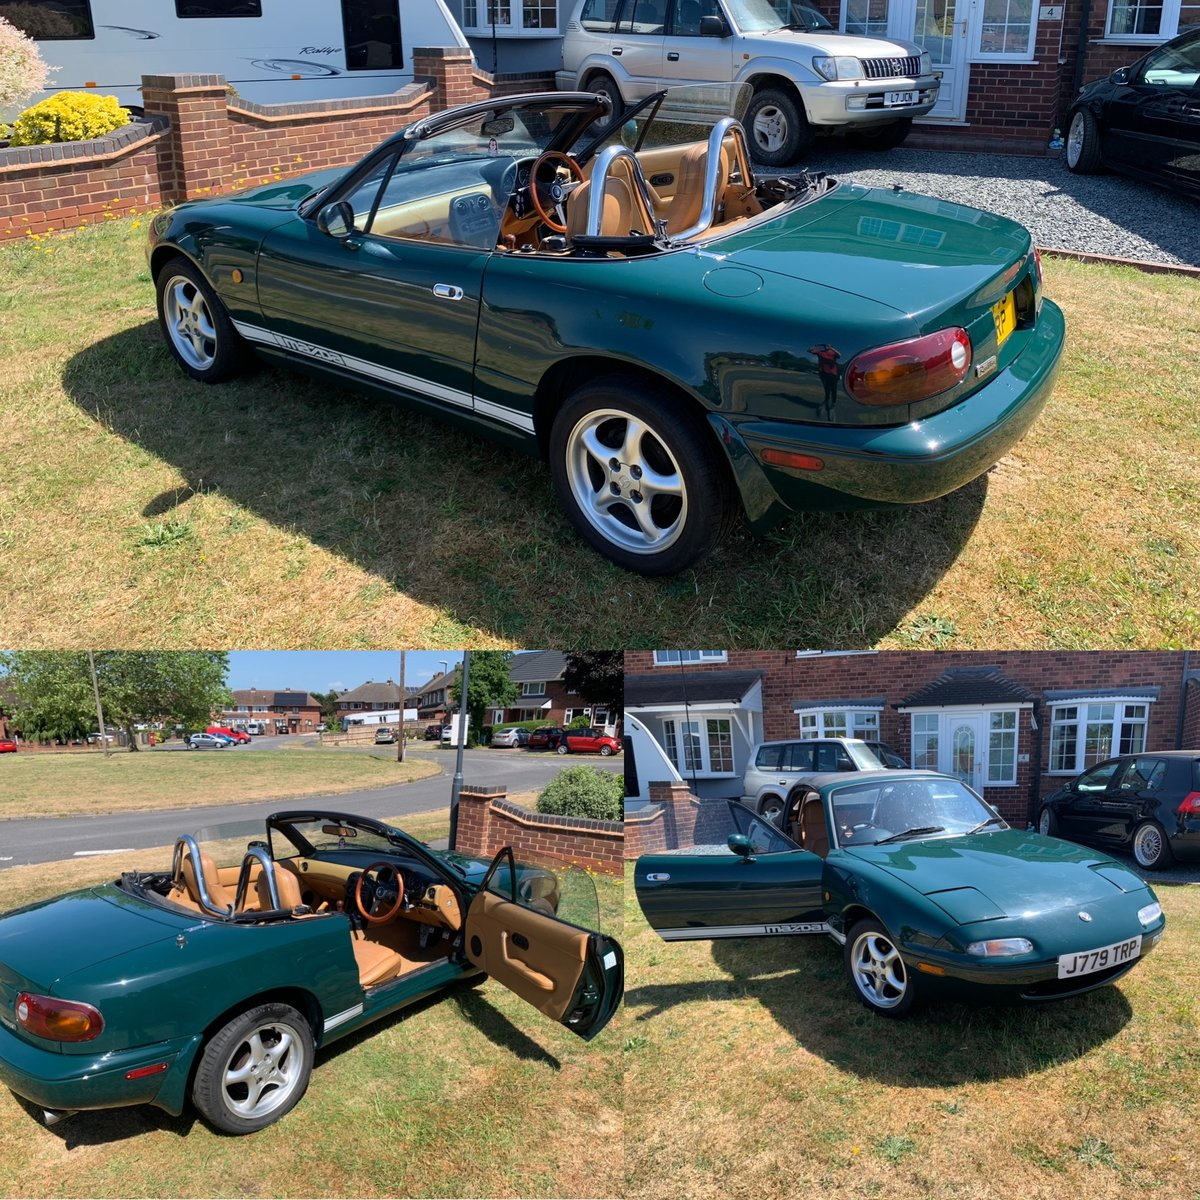 1992 Mazda mx5 import For Sale (picture 1 of 6)